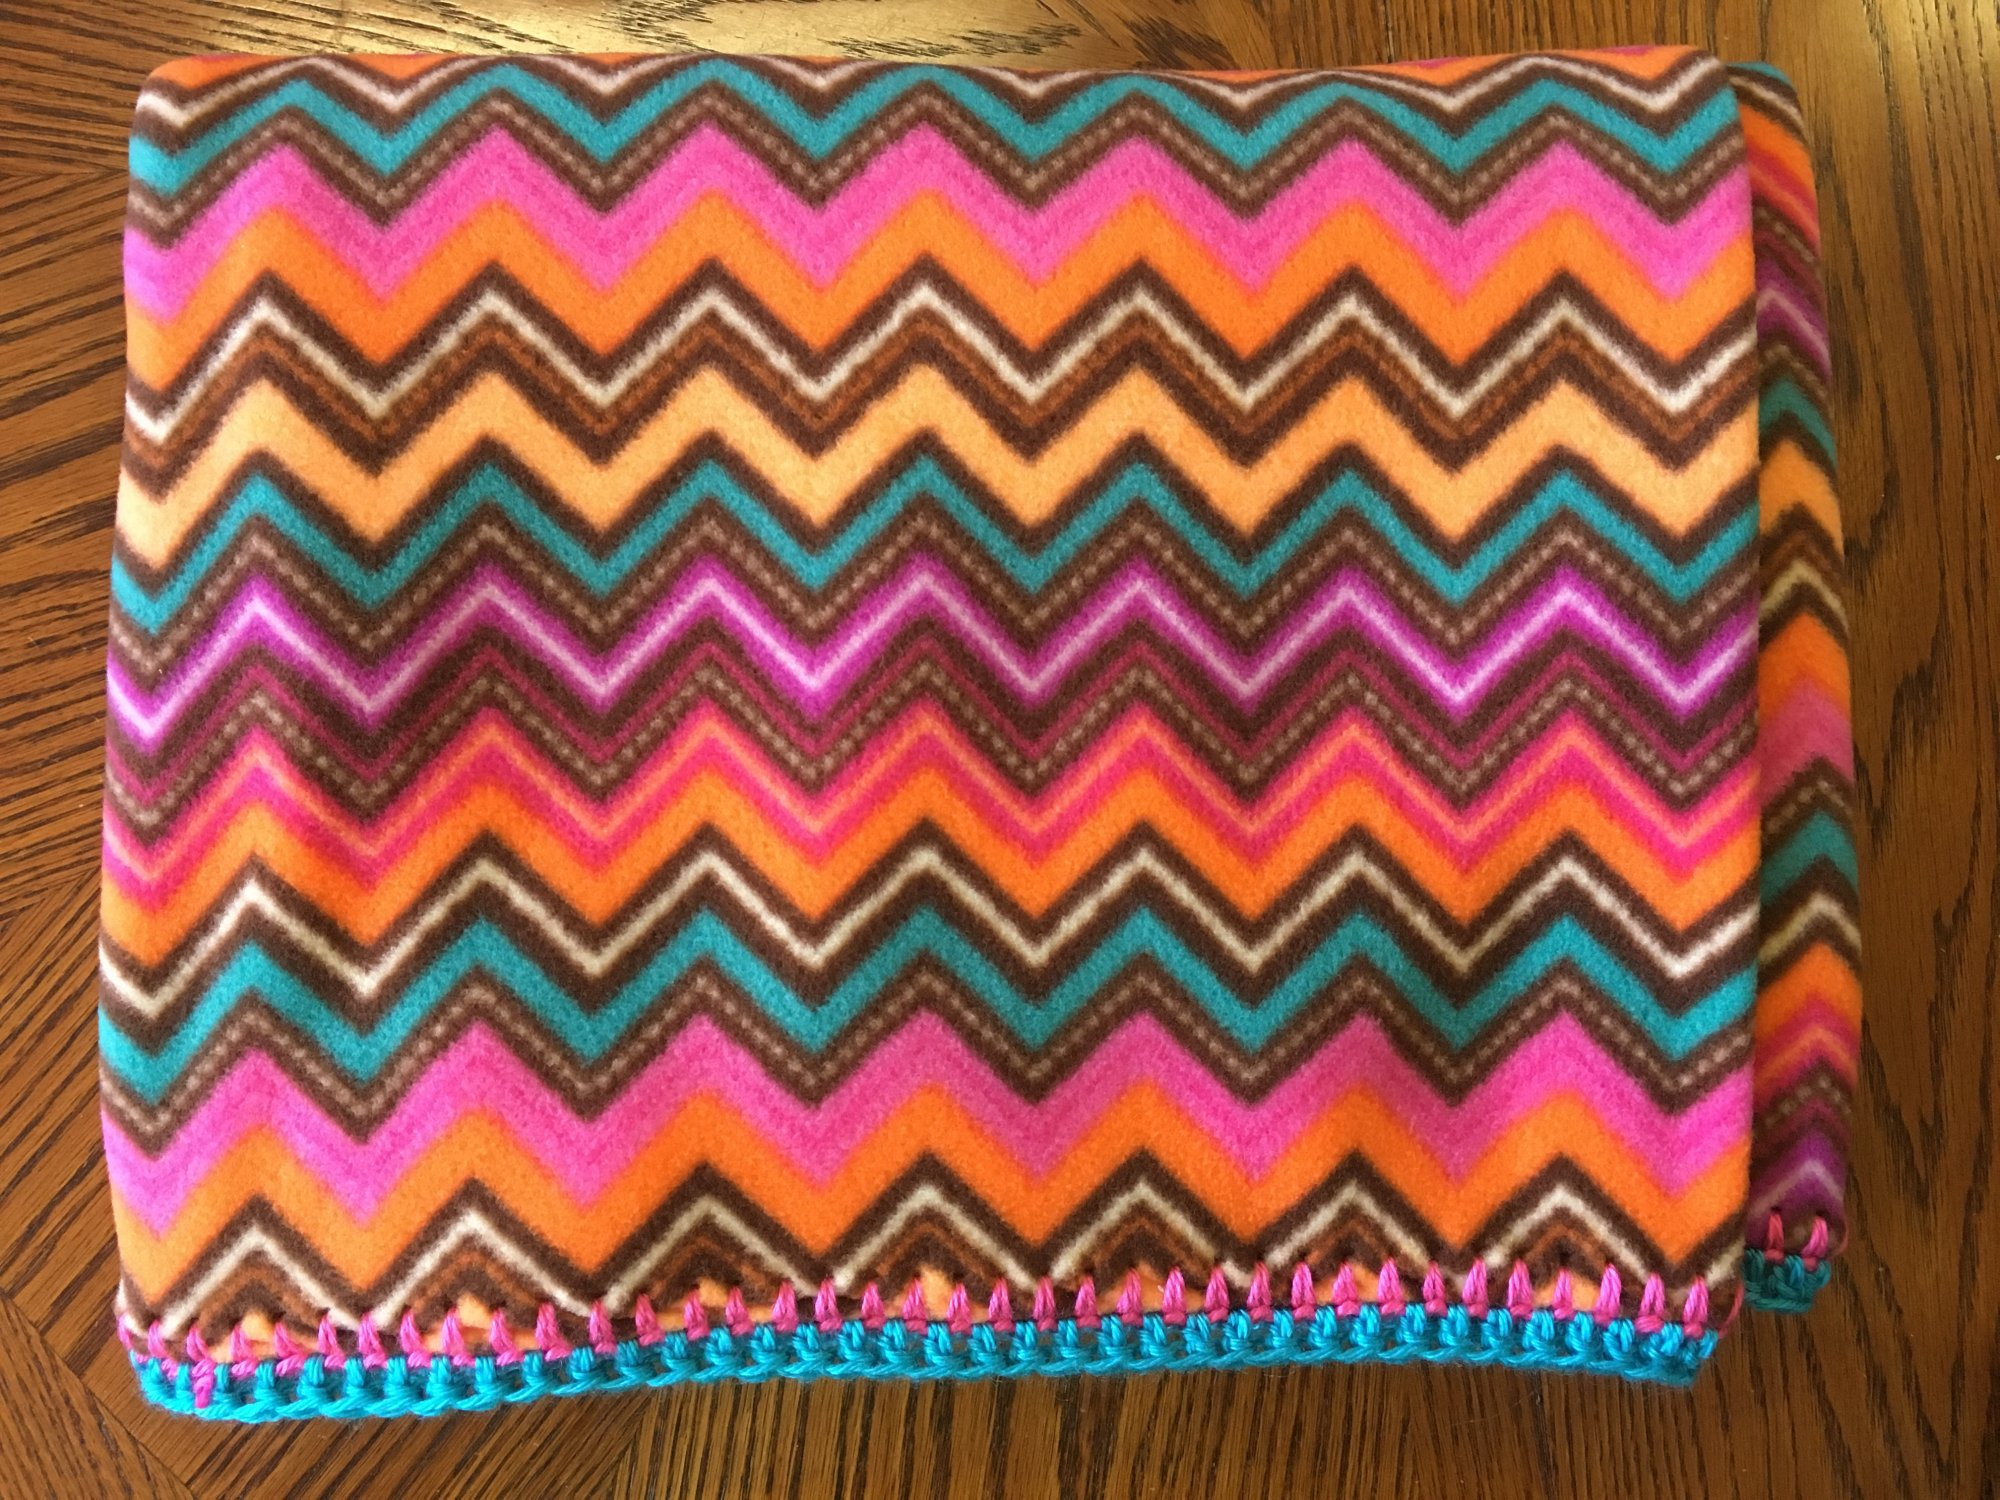 Teal/Pink Chevron Blanket 64 x 45